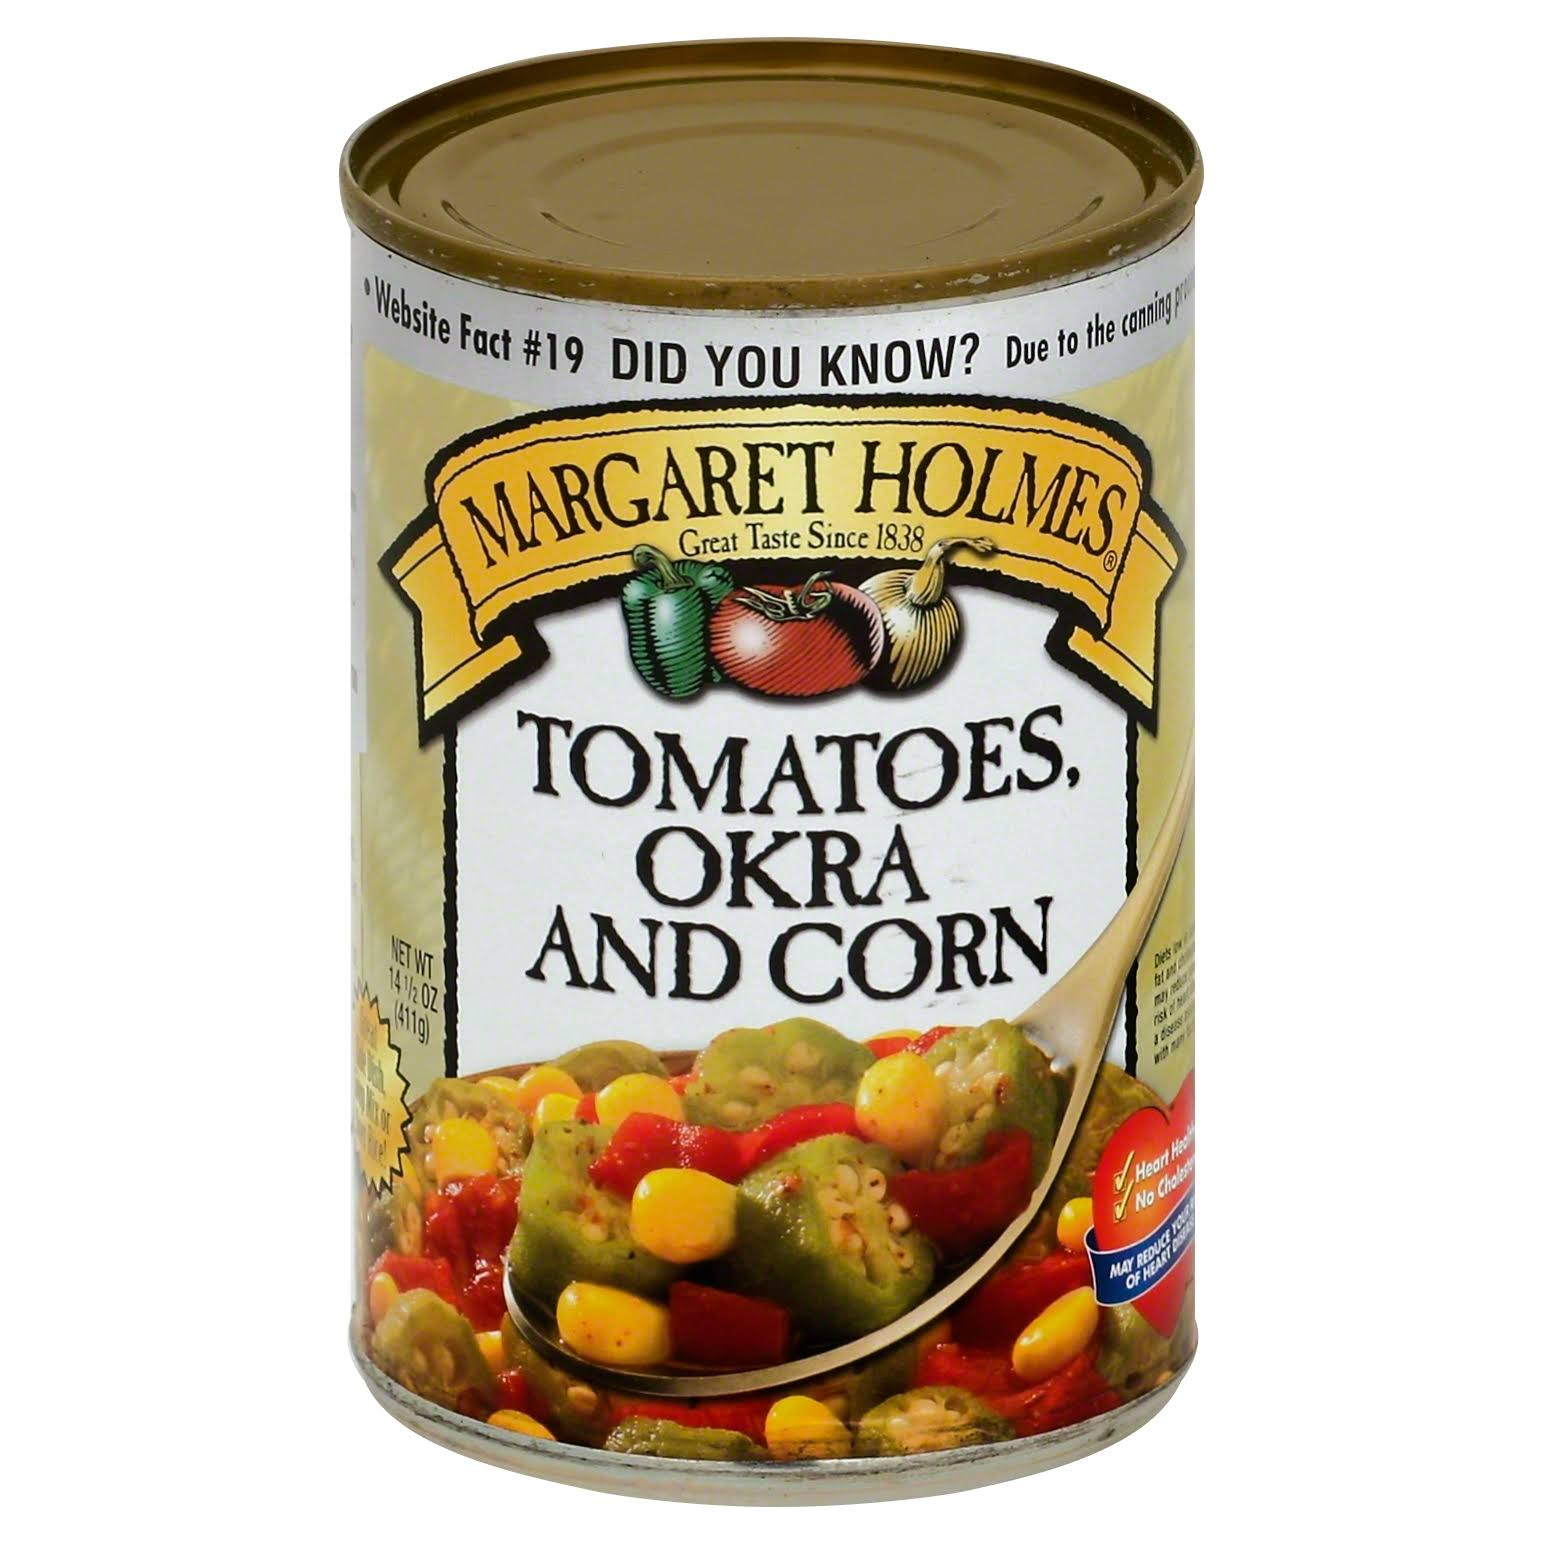 Margaret Holmes Tomatoes Okra and Corn - 14.5oz